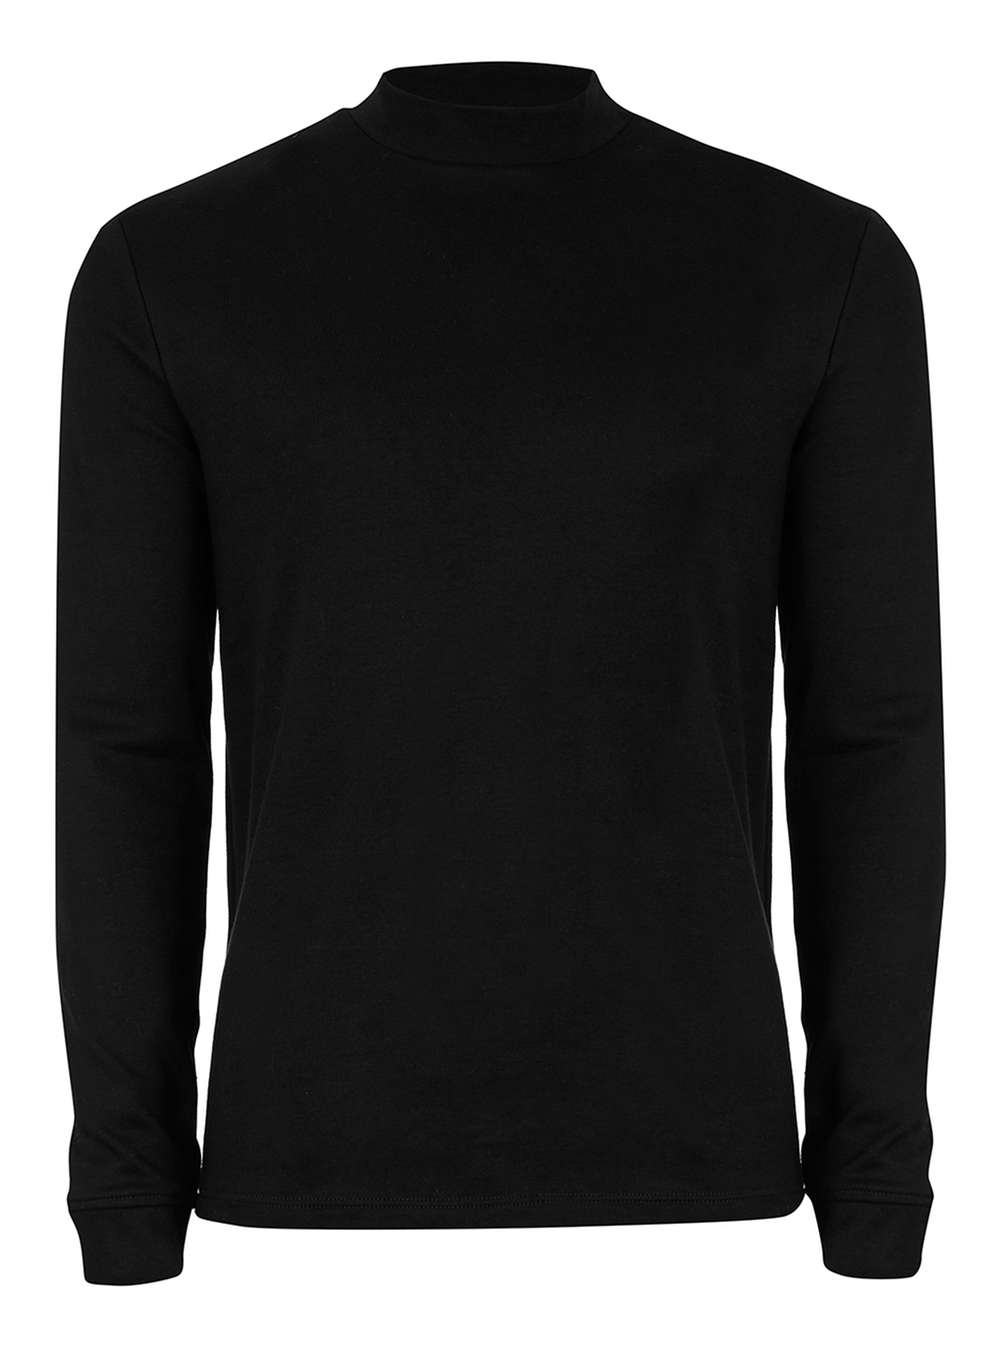 TOPMAN PREMIUM Black Turtle Neck Long Sleeve T-Shirt, £30